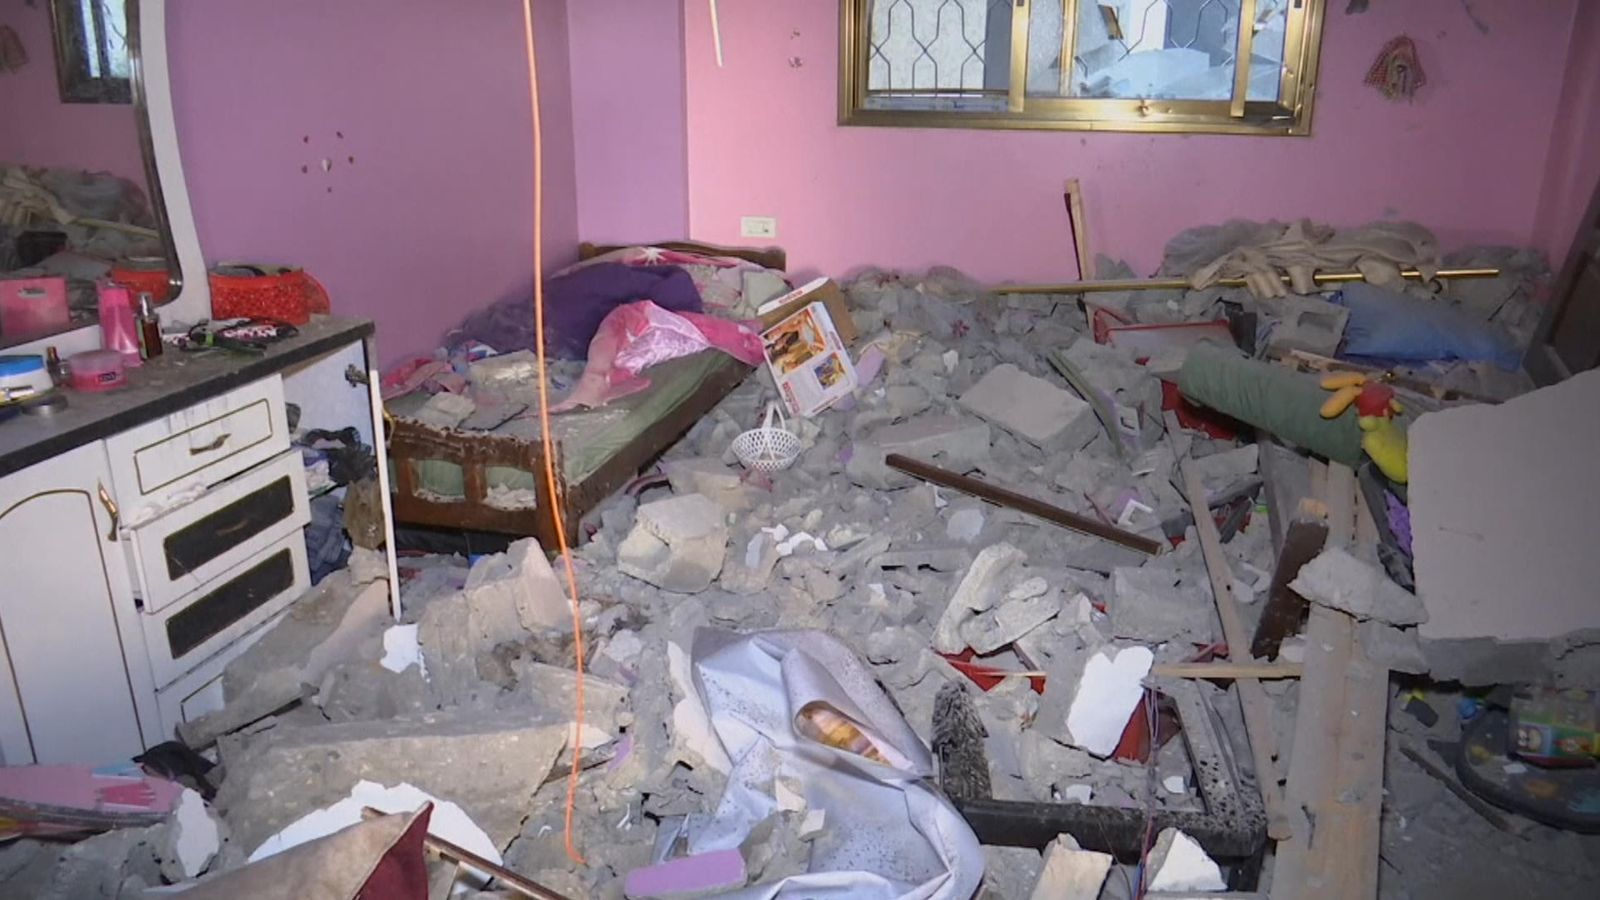 Israel-Gaza conflict: Grieving father says children killed 'without warning' after Israeli strike hits house